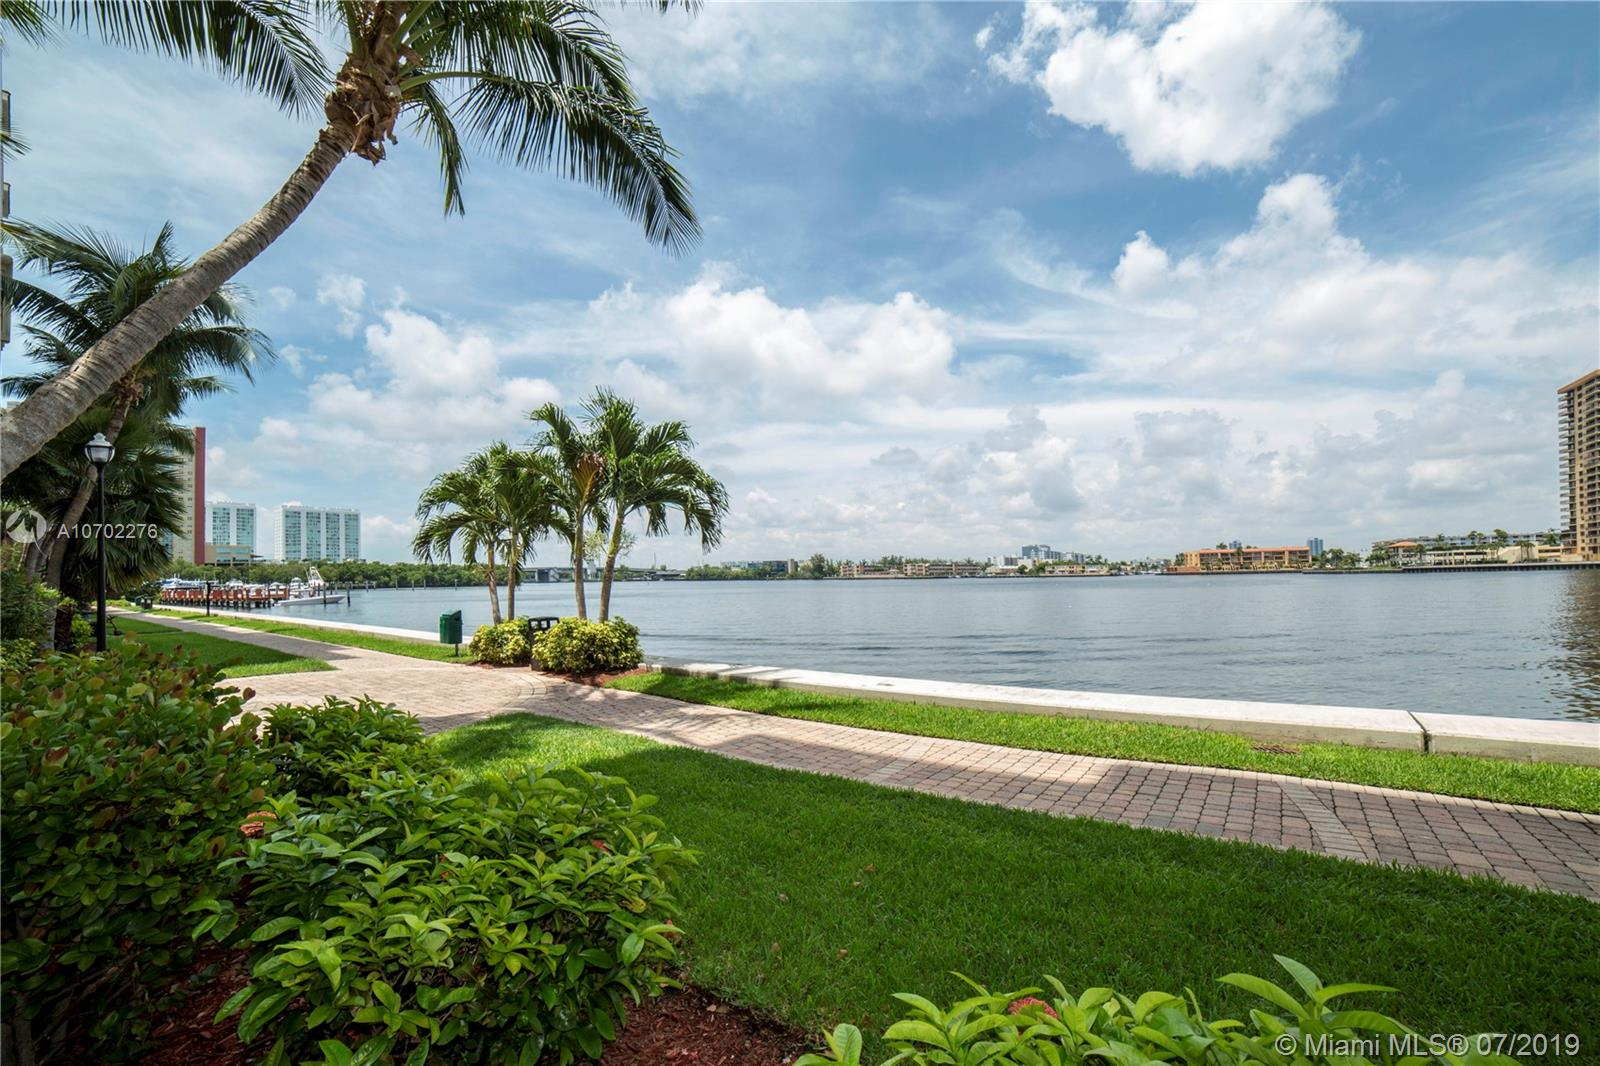 17150 N Bay Rd #2103 For Sale A10702276, FL